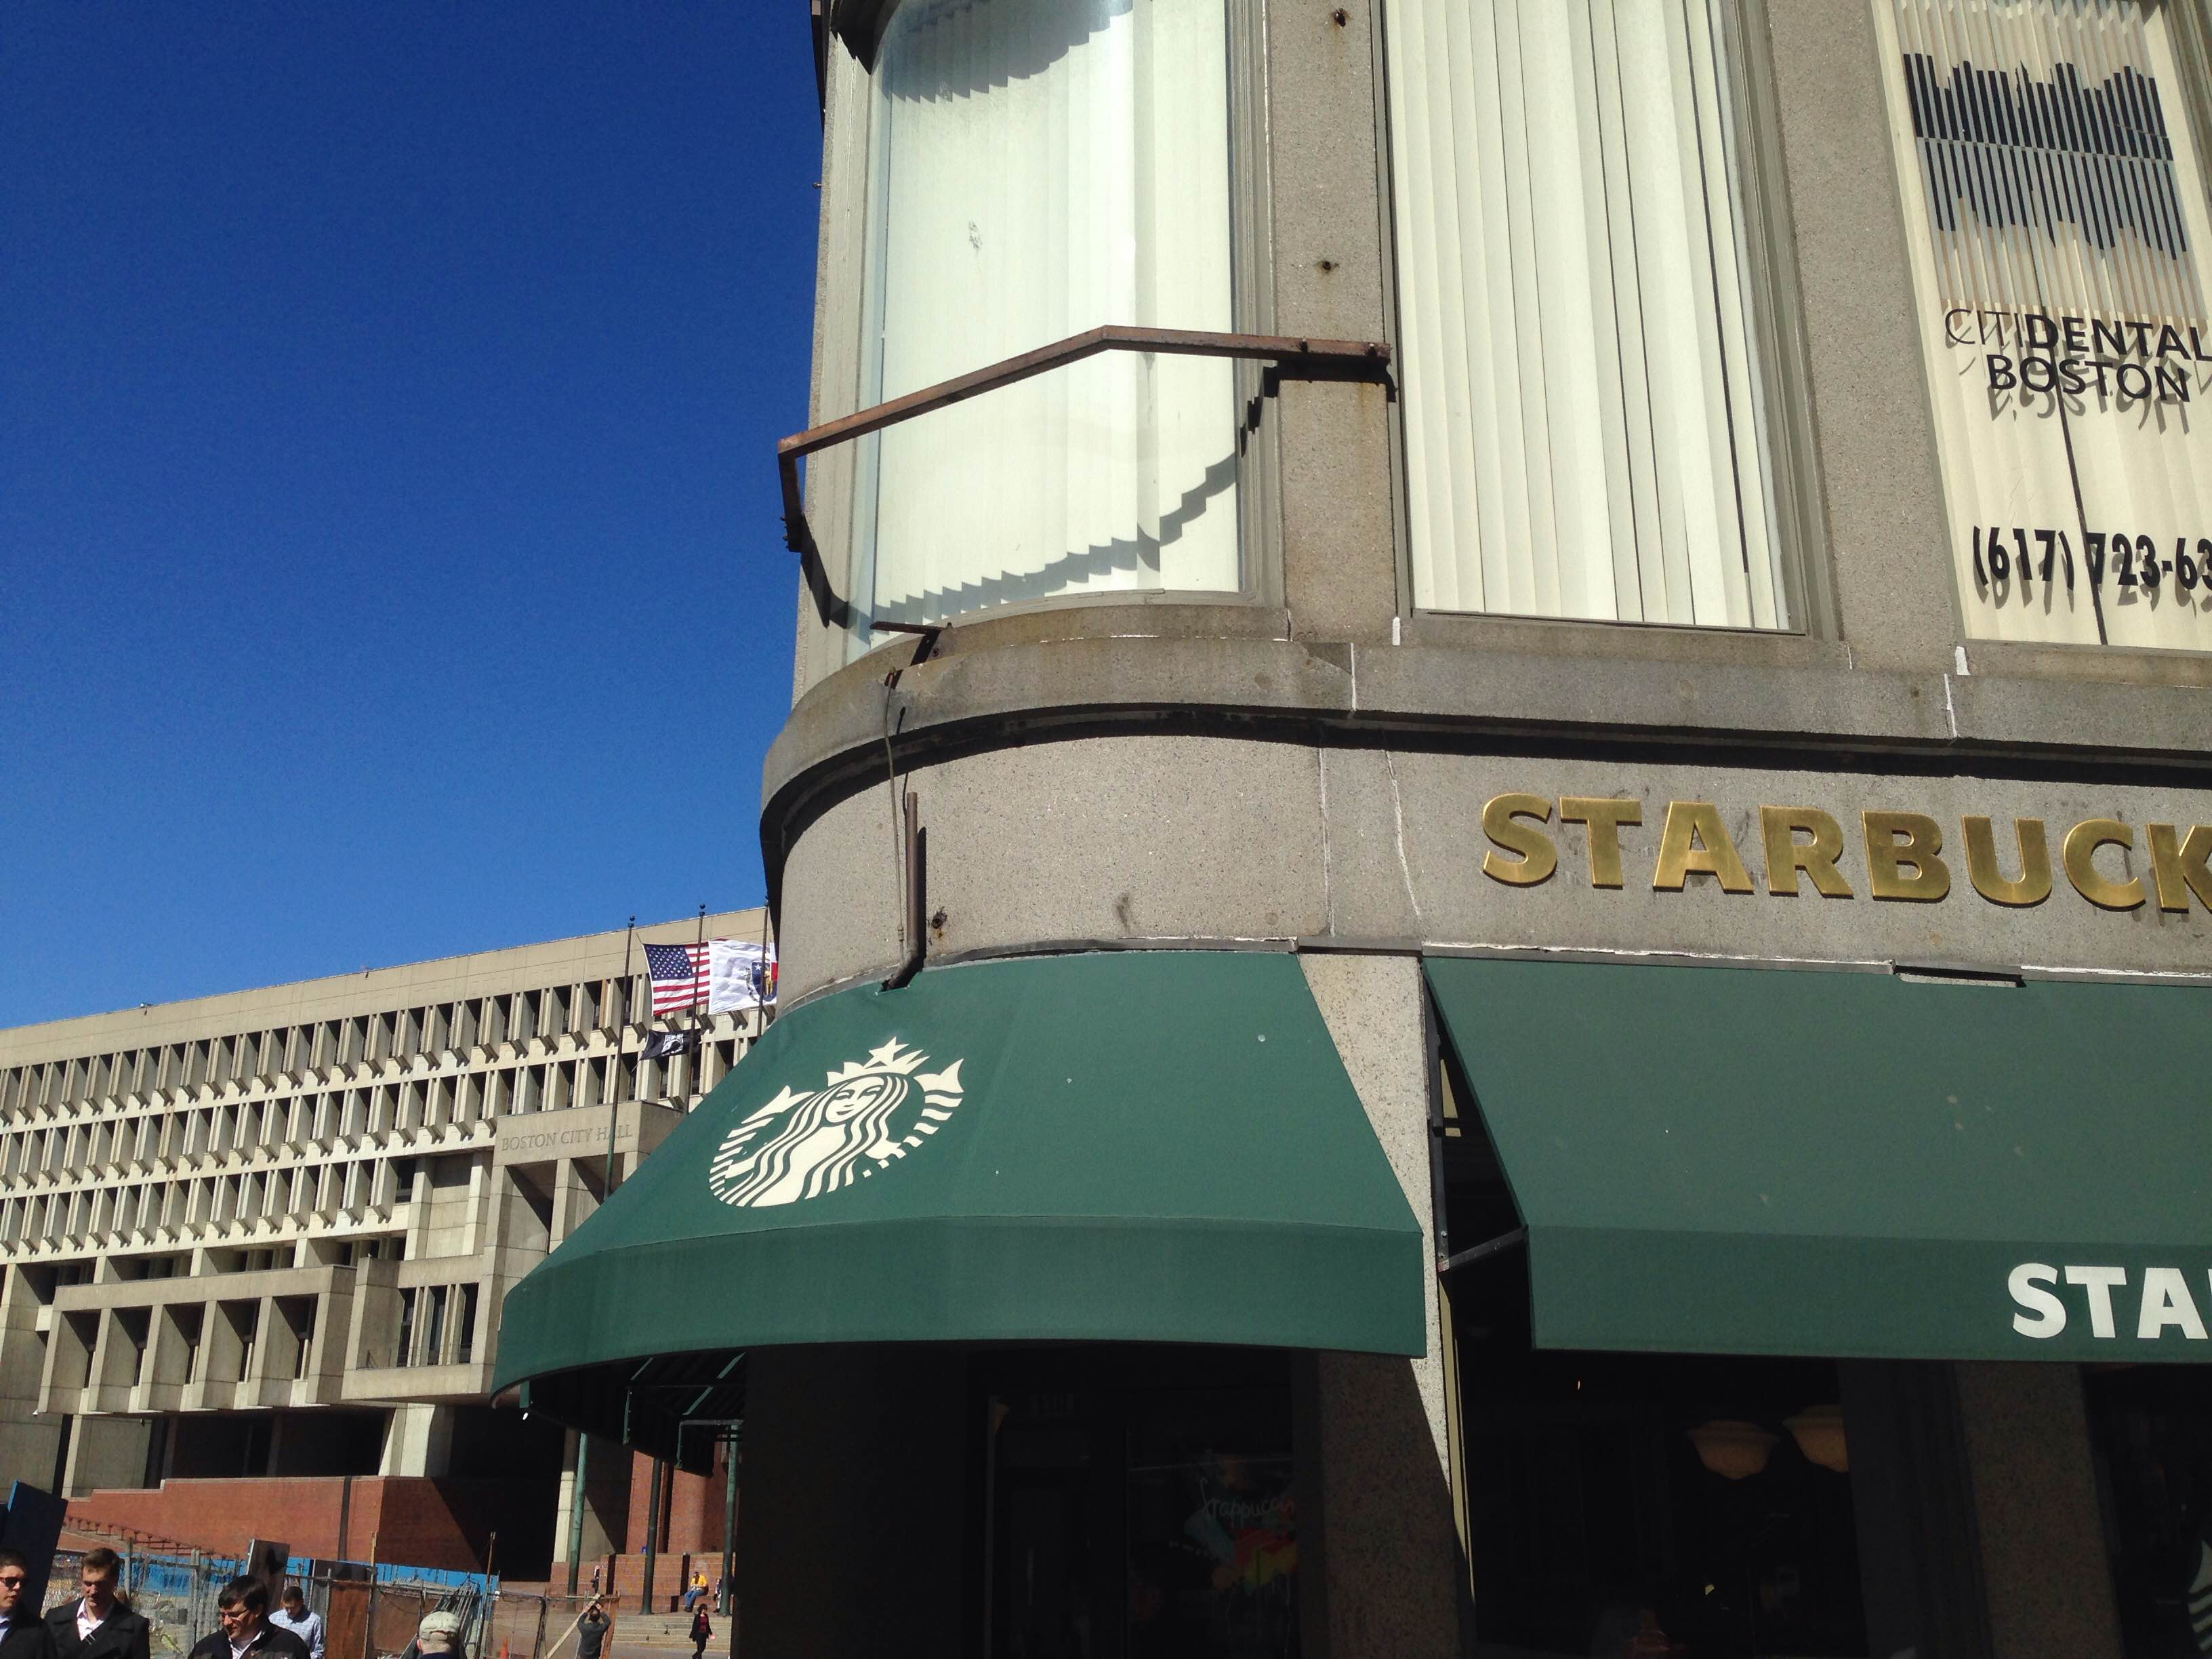 The spot above the Court Street Starbucks where the Steaming Tea Kettle sat is now empty.